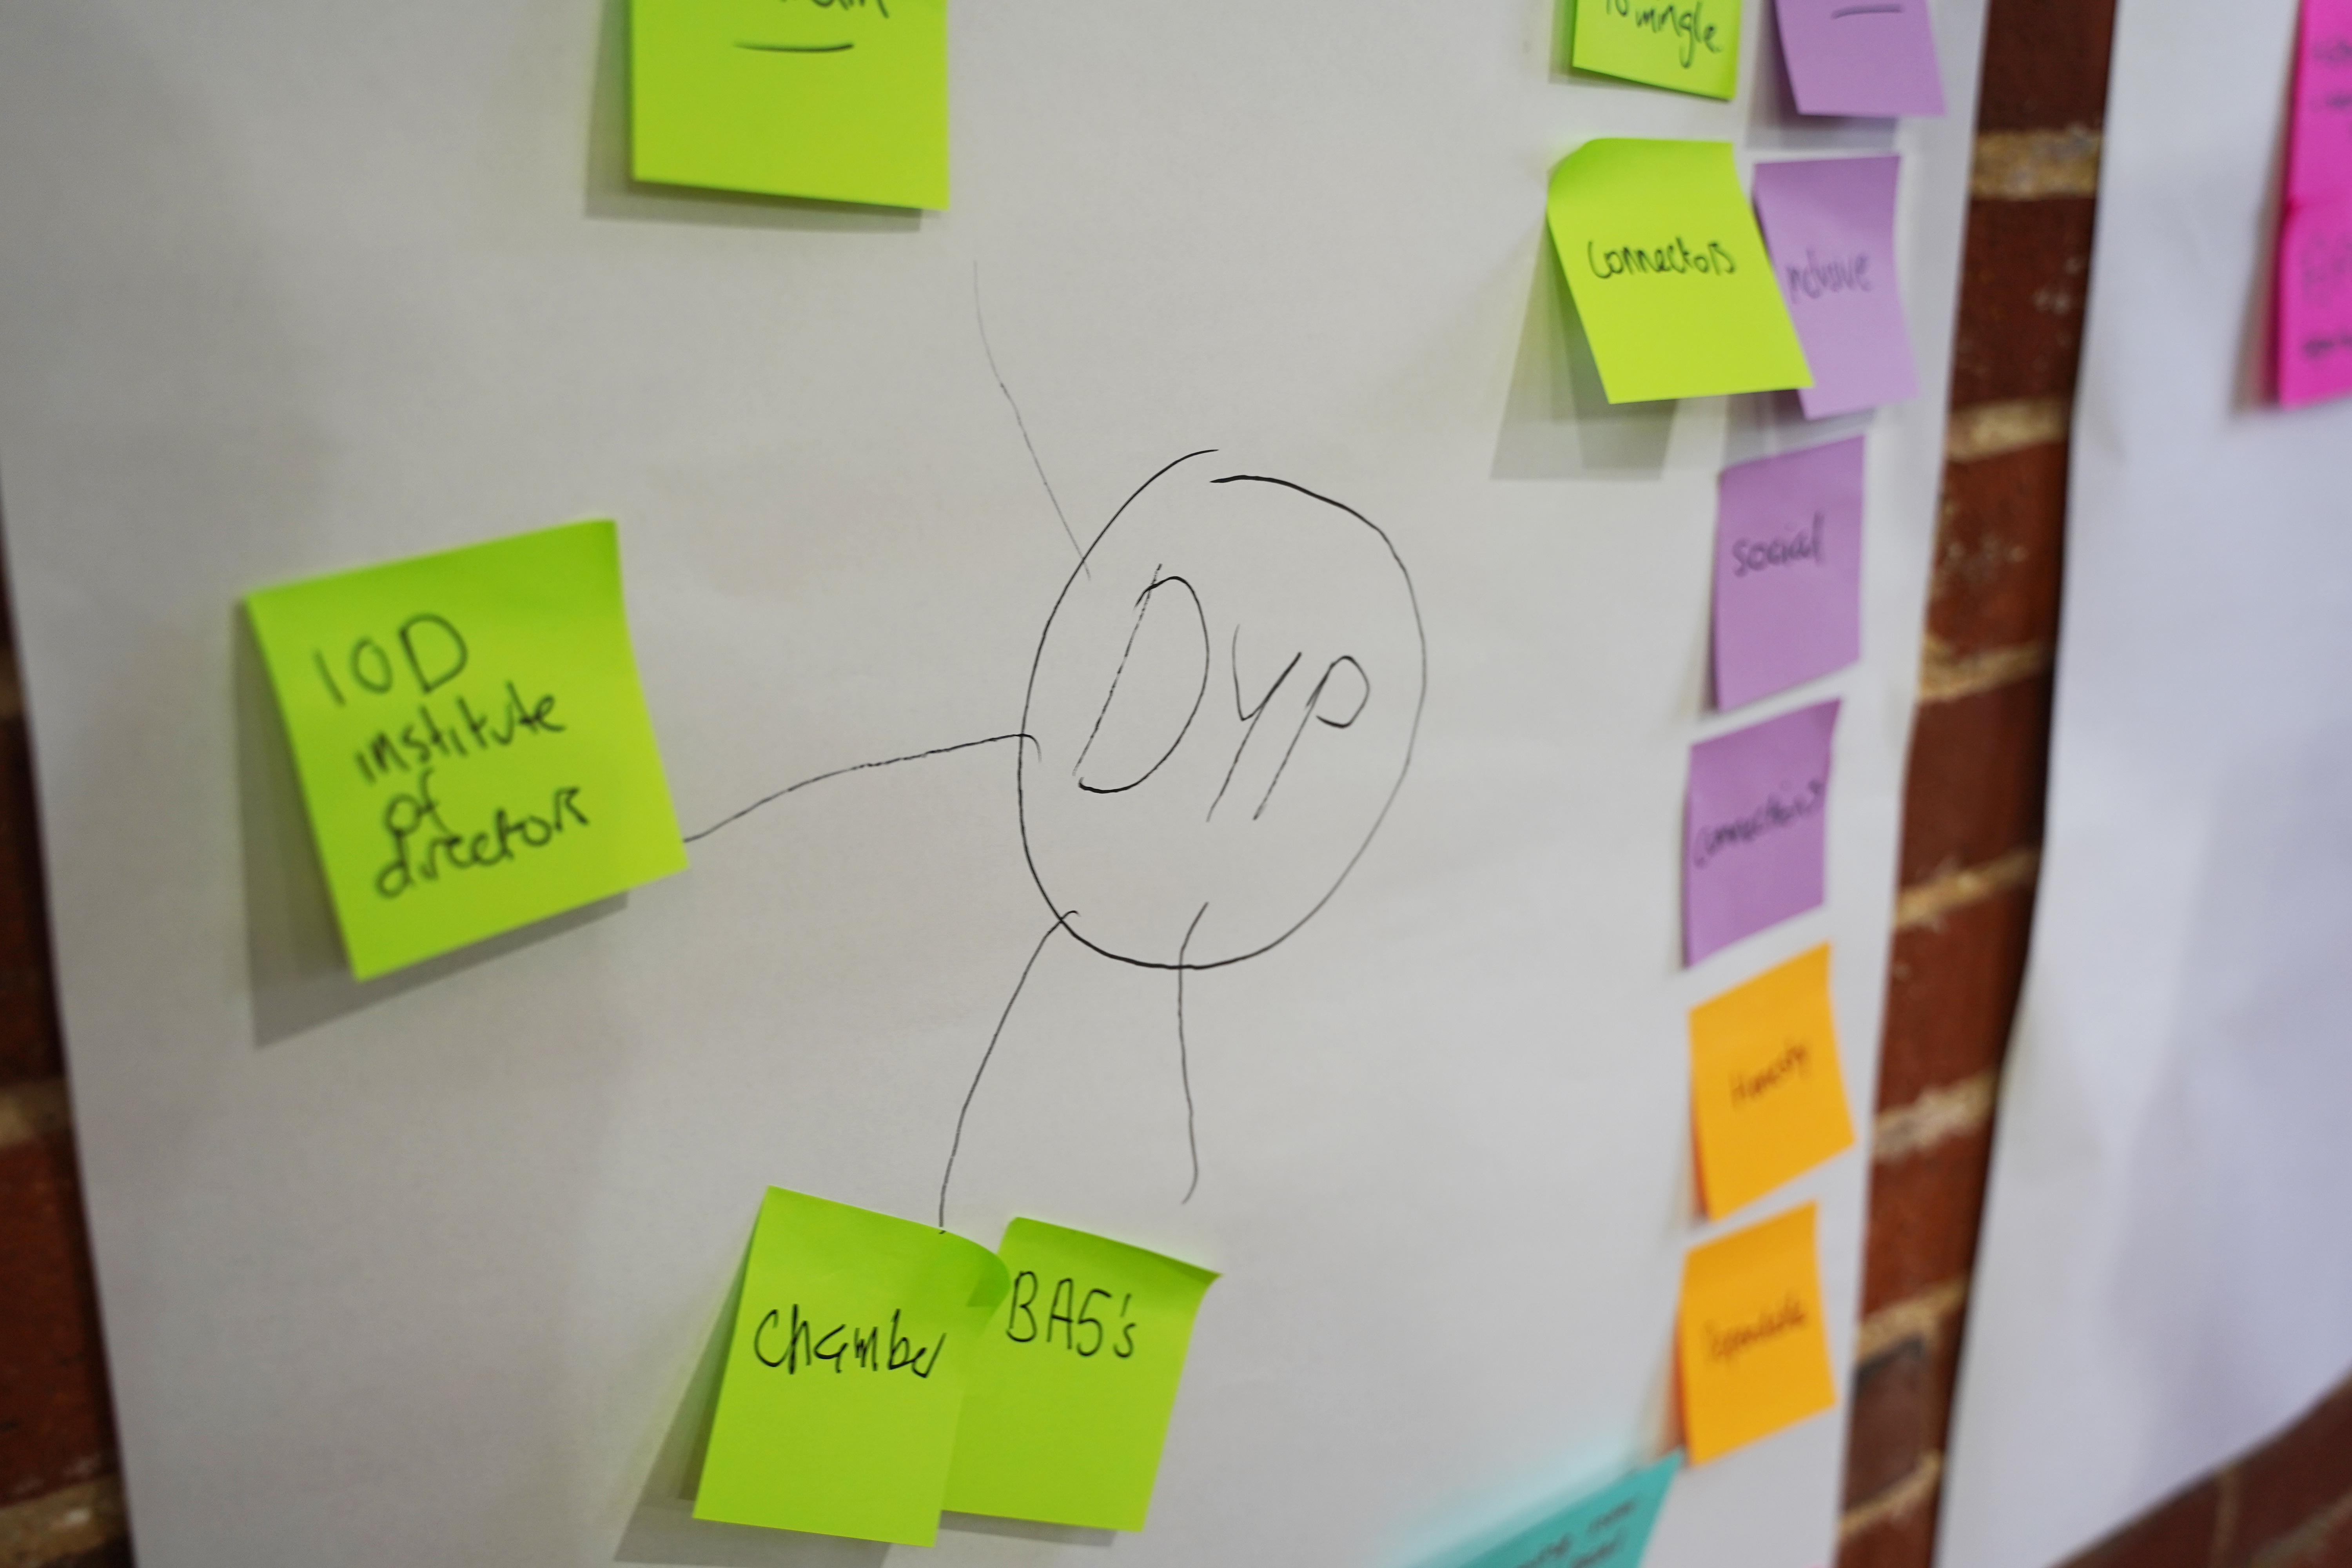 Brainstorming with post-it notes